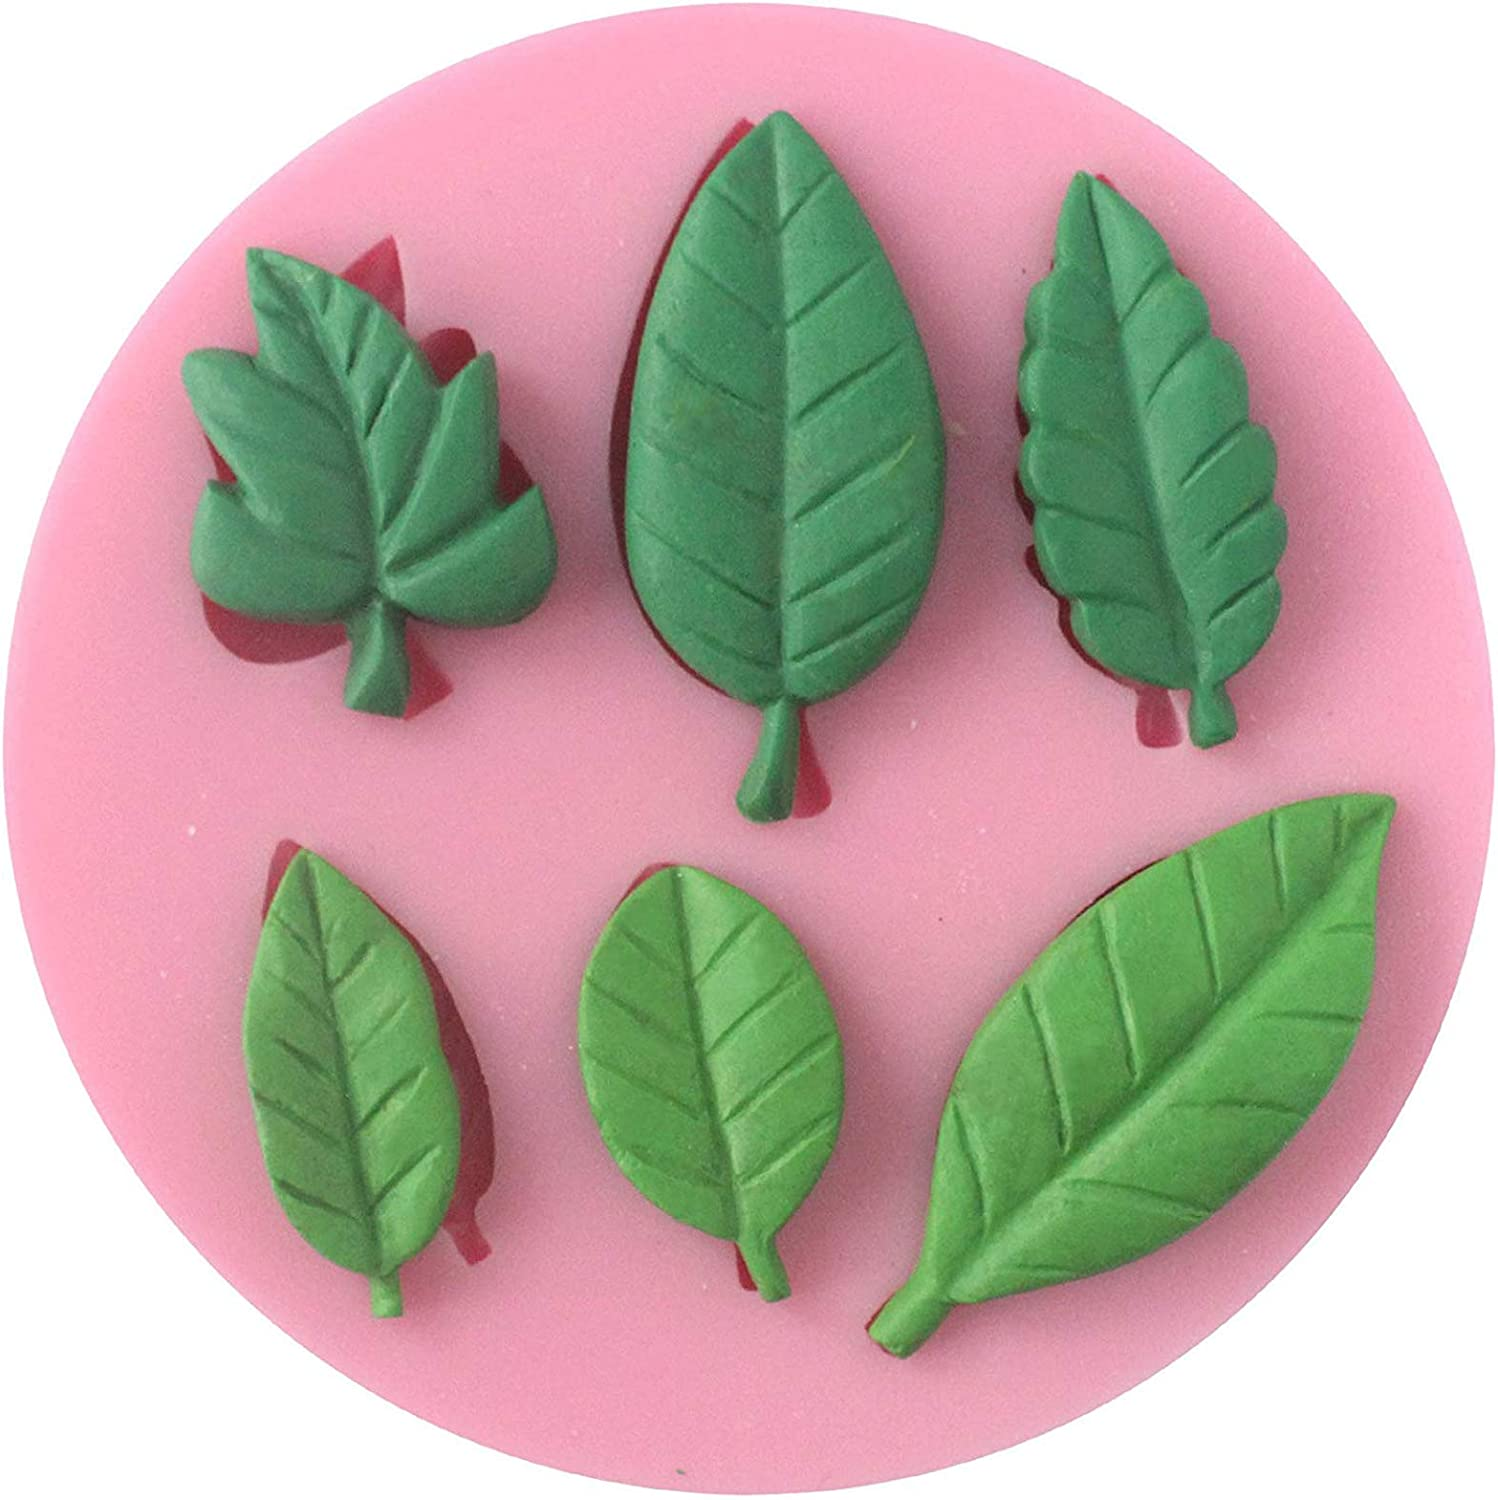 Funshowcase 6 Leaves Fondant Leaf Candy Mold for Sugar Paste, Chocolate, Fondant, Butter, Resin, Polymer Clay, Wax, Soap, Crafting Projects and Cake Decoration